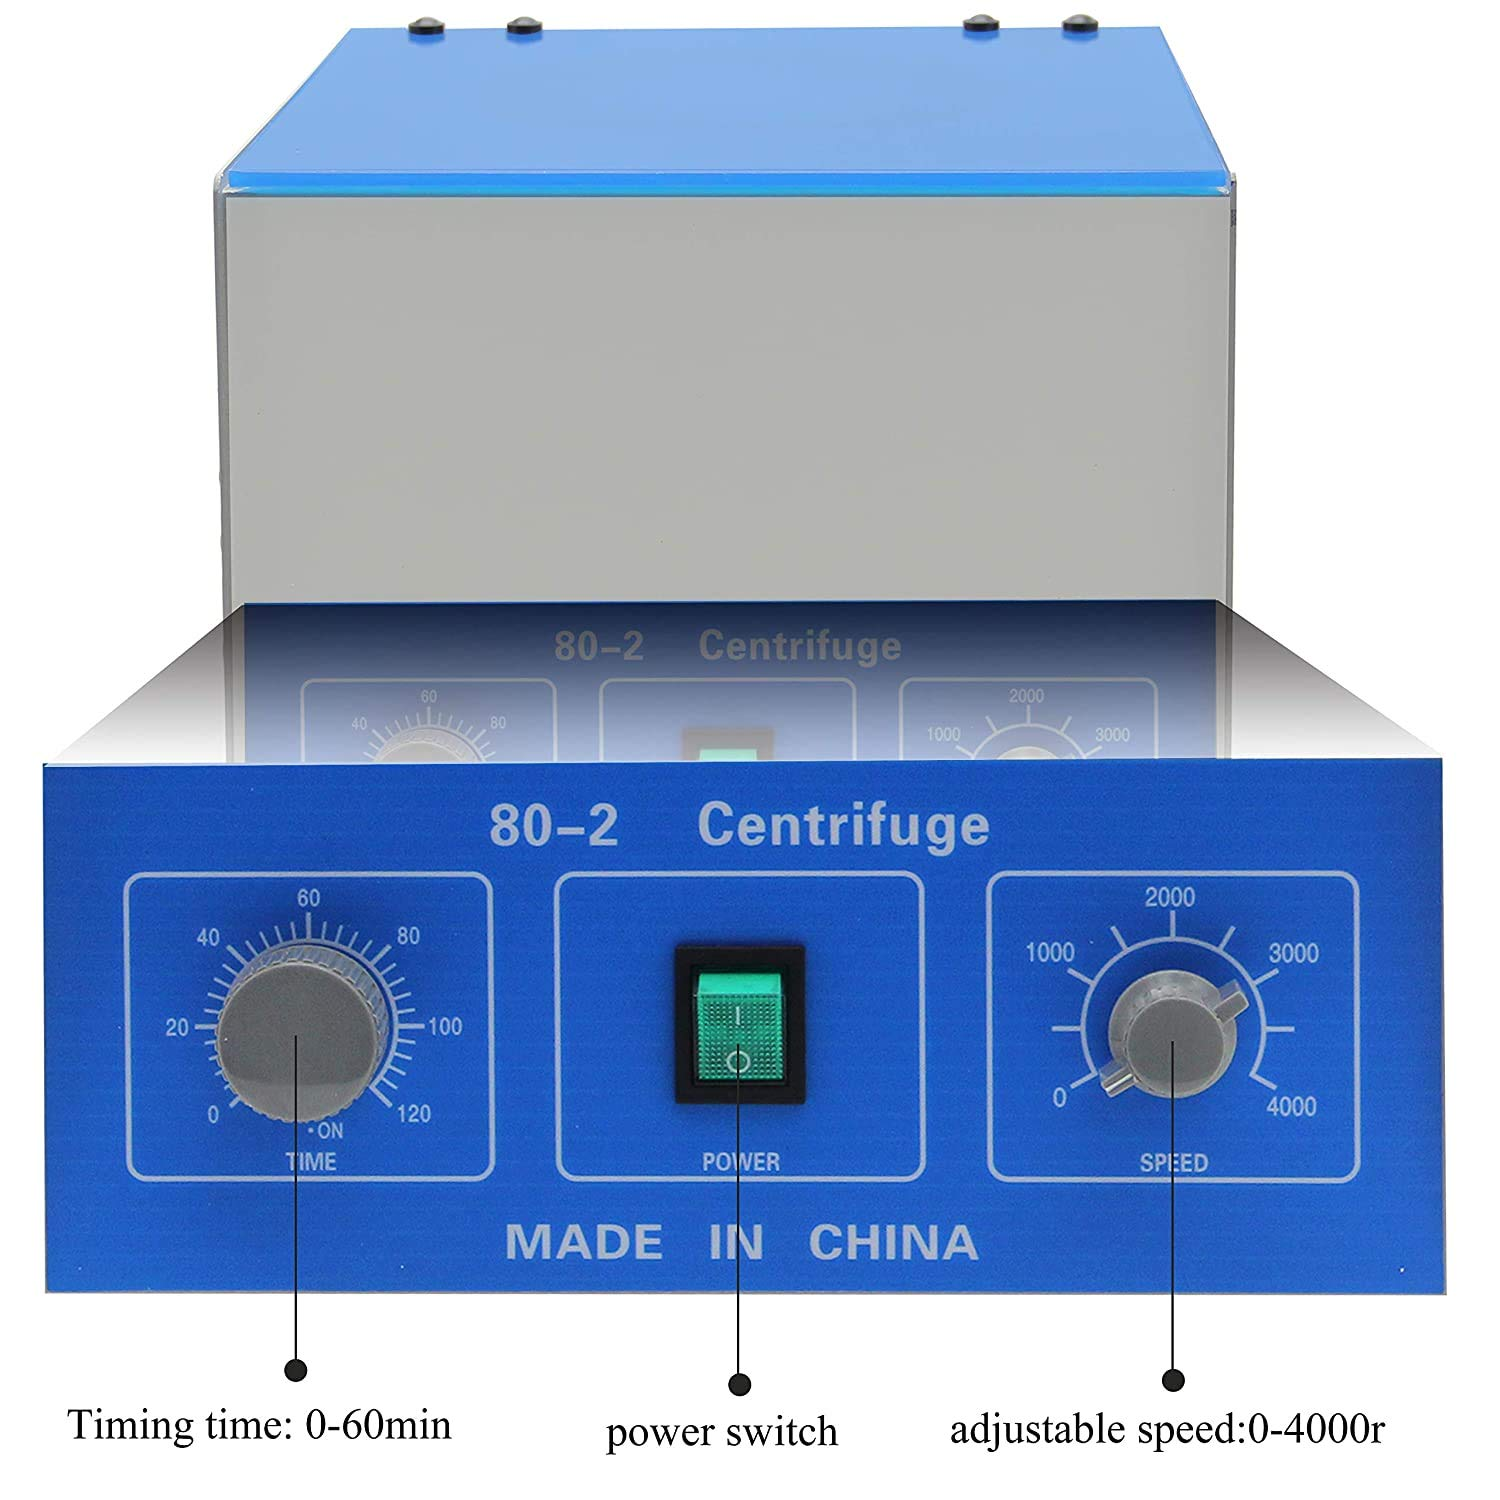 Timer 0-60 Minutes Capacity 20 ml x 6 HARTI Electric Centrifuge 220V Laboratory Desktop Low Speed Centrifuge with Timer and Speed Control 4000 RPM